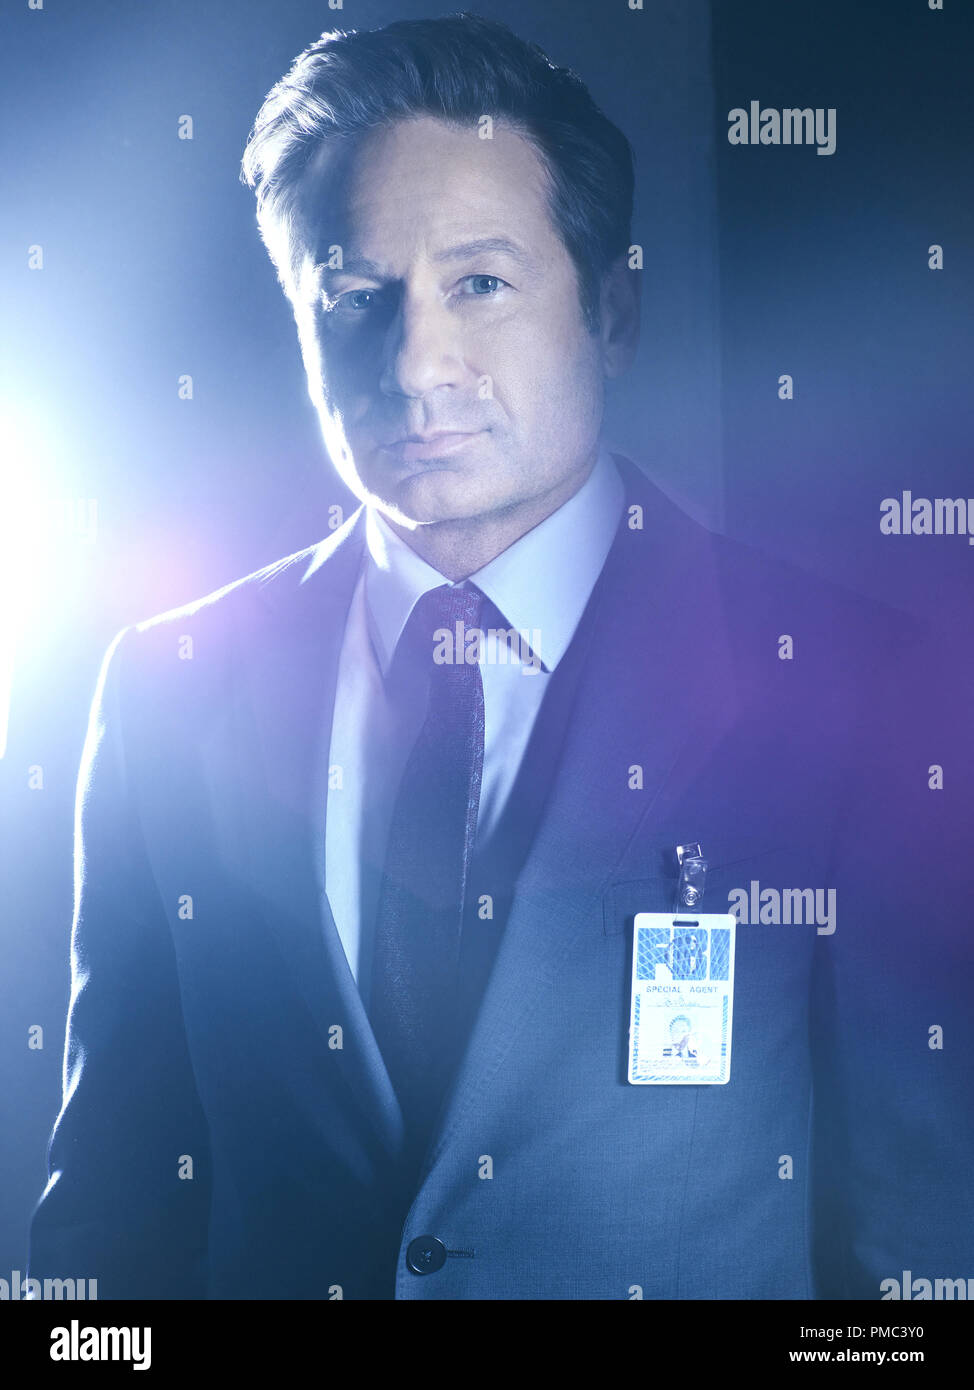 THE X-FILES:  David Duchovny as FBI Special Agent Fox  Mulder in THE X-FILES on Fox. © 2018 Fox Broadcasting Co.  Cr:  Frank Ockenfels/Fox - Stock Image